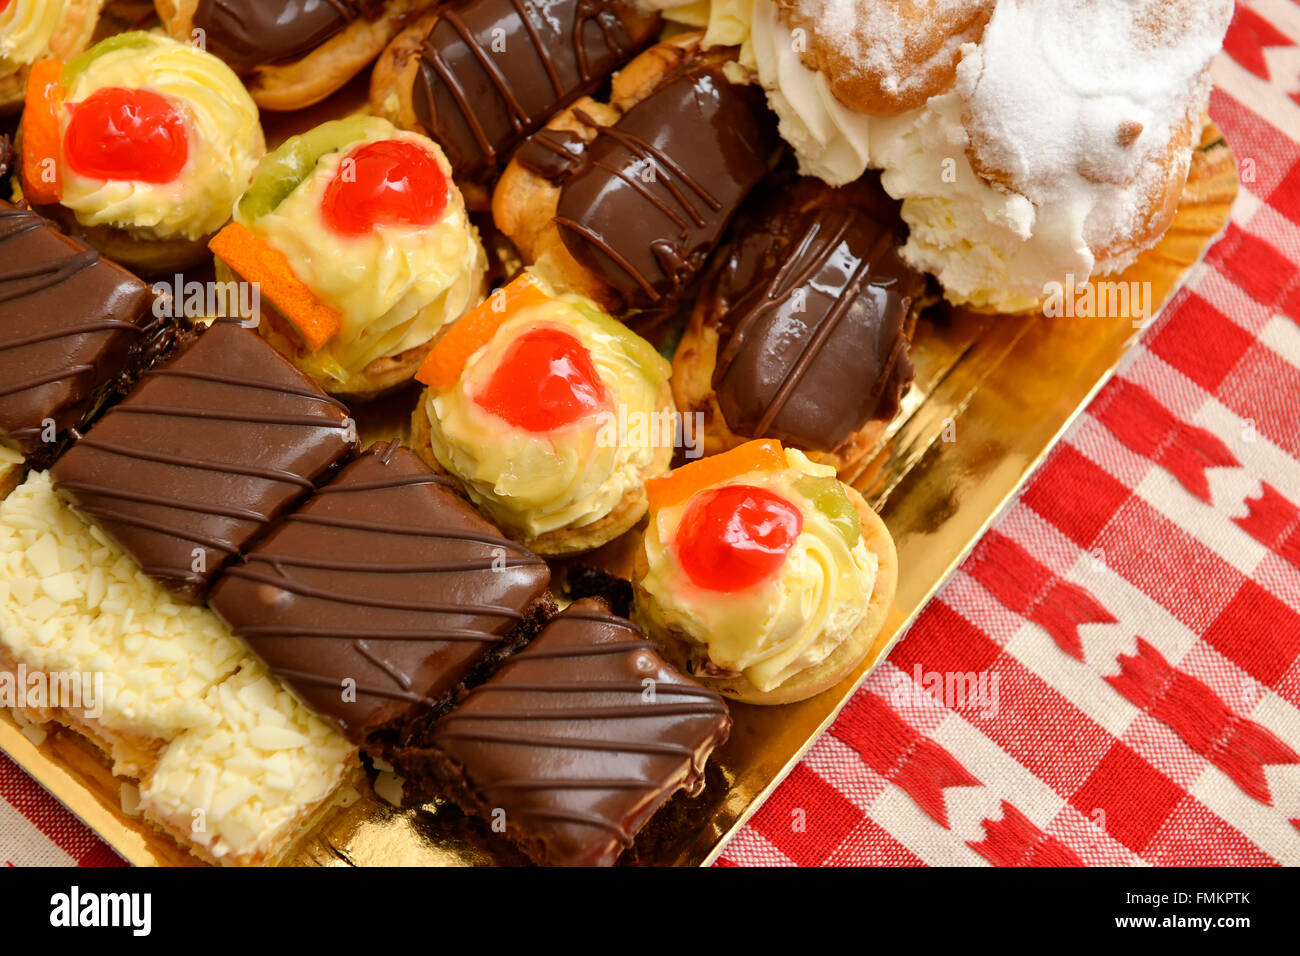 Eclair and a lot of cakes on a table - Stock Image